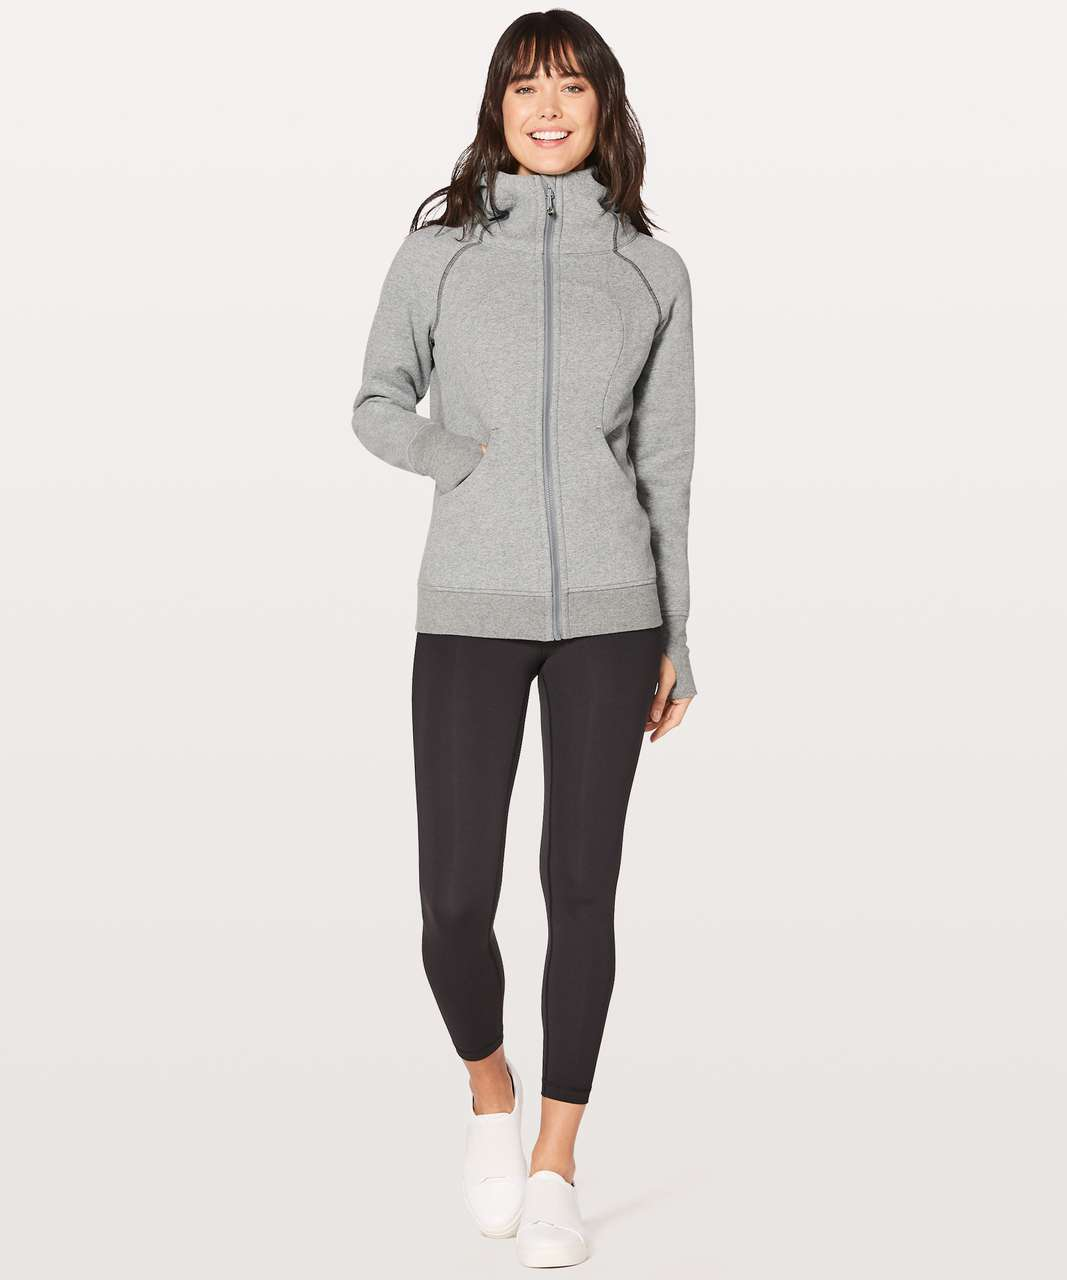 Lululemon Scuba Hoodie *Classic Cotton Fleece - Heathered Speckled Medium Grey / Battleship